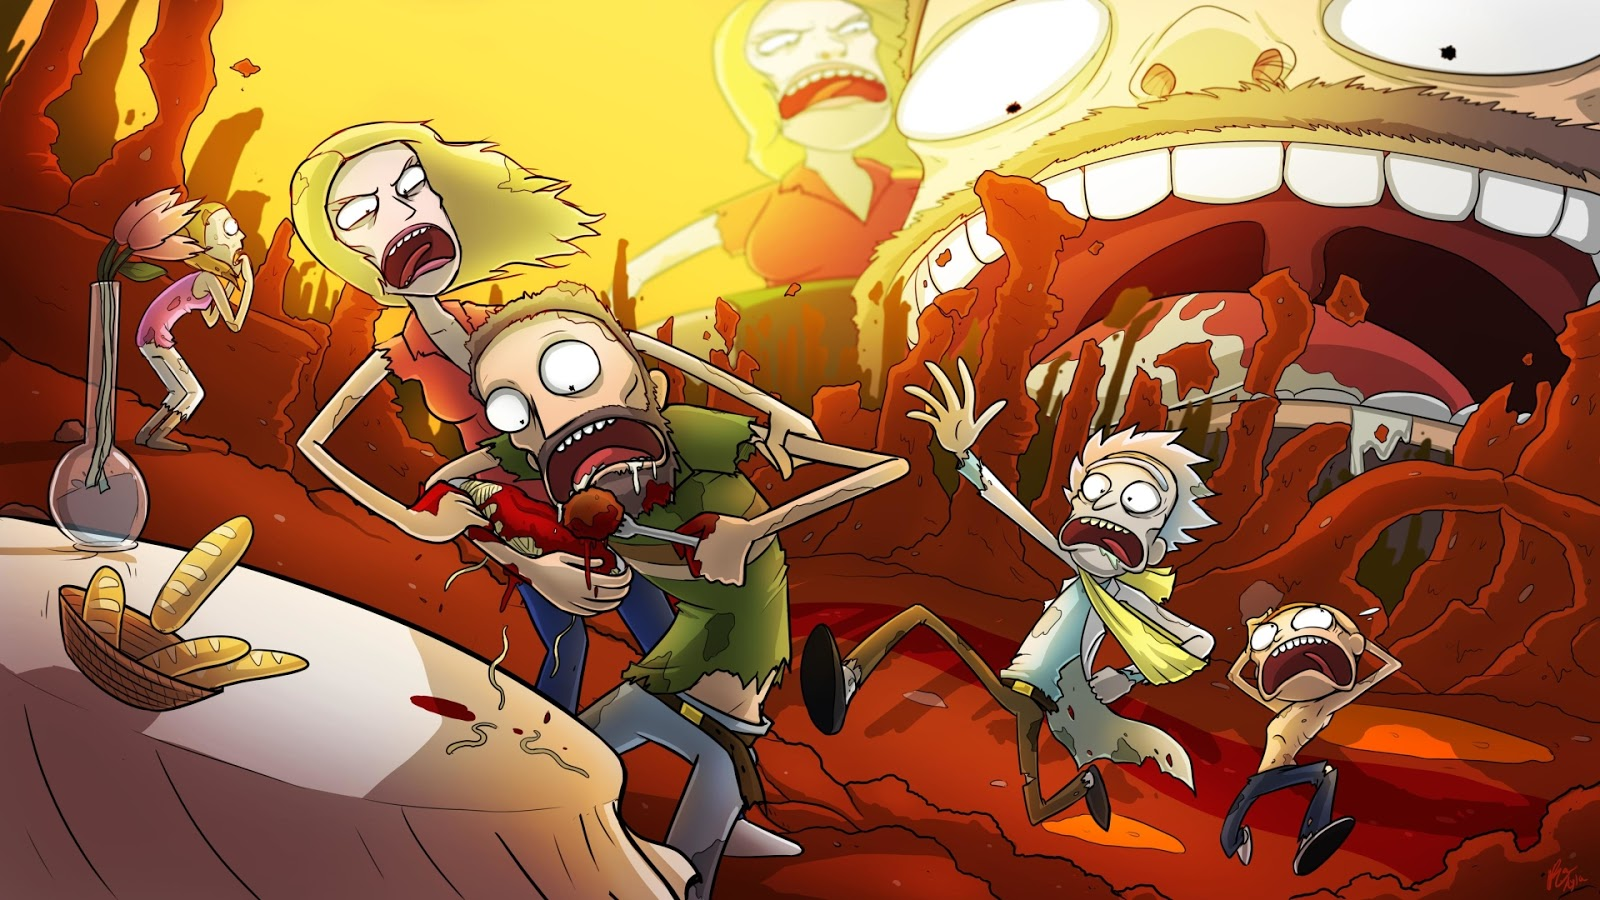 50 1080p Rick And Morty Hd Wallpapers 2020 Hd Backgrounds For Computer We 7